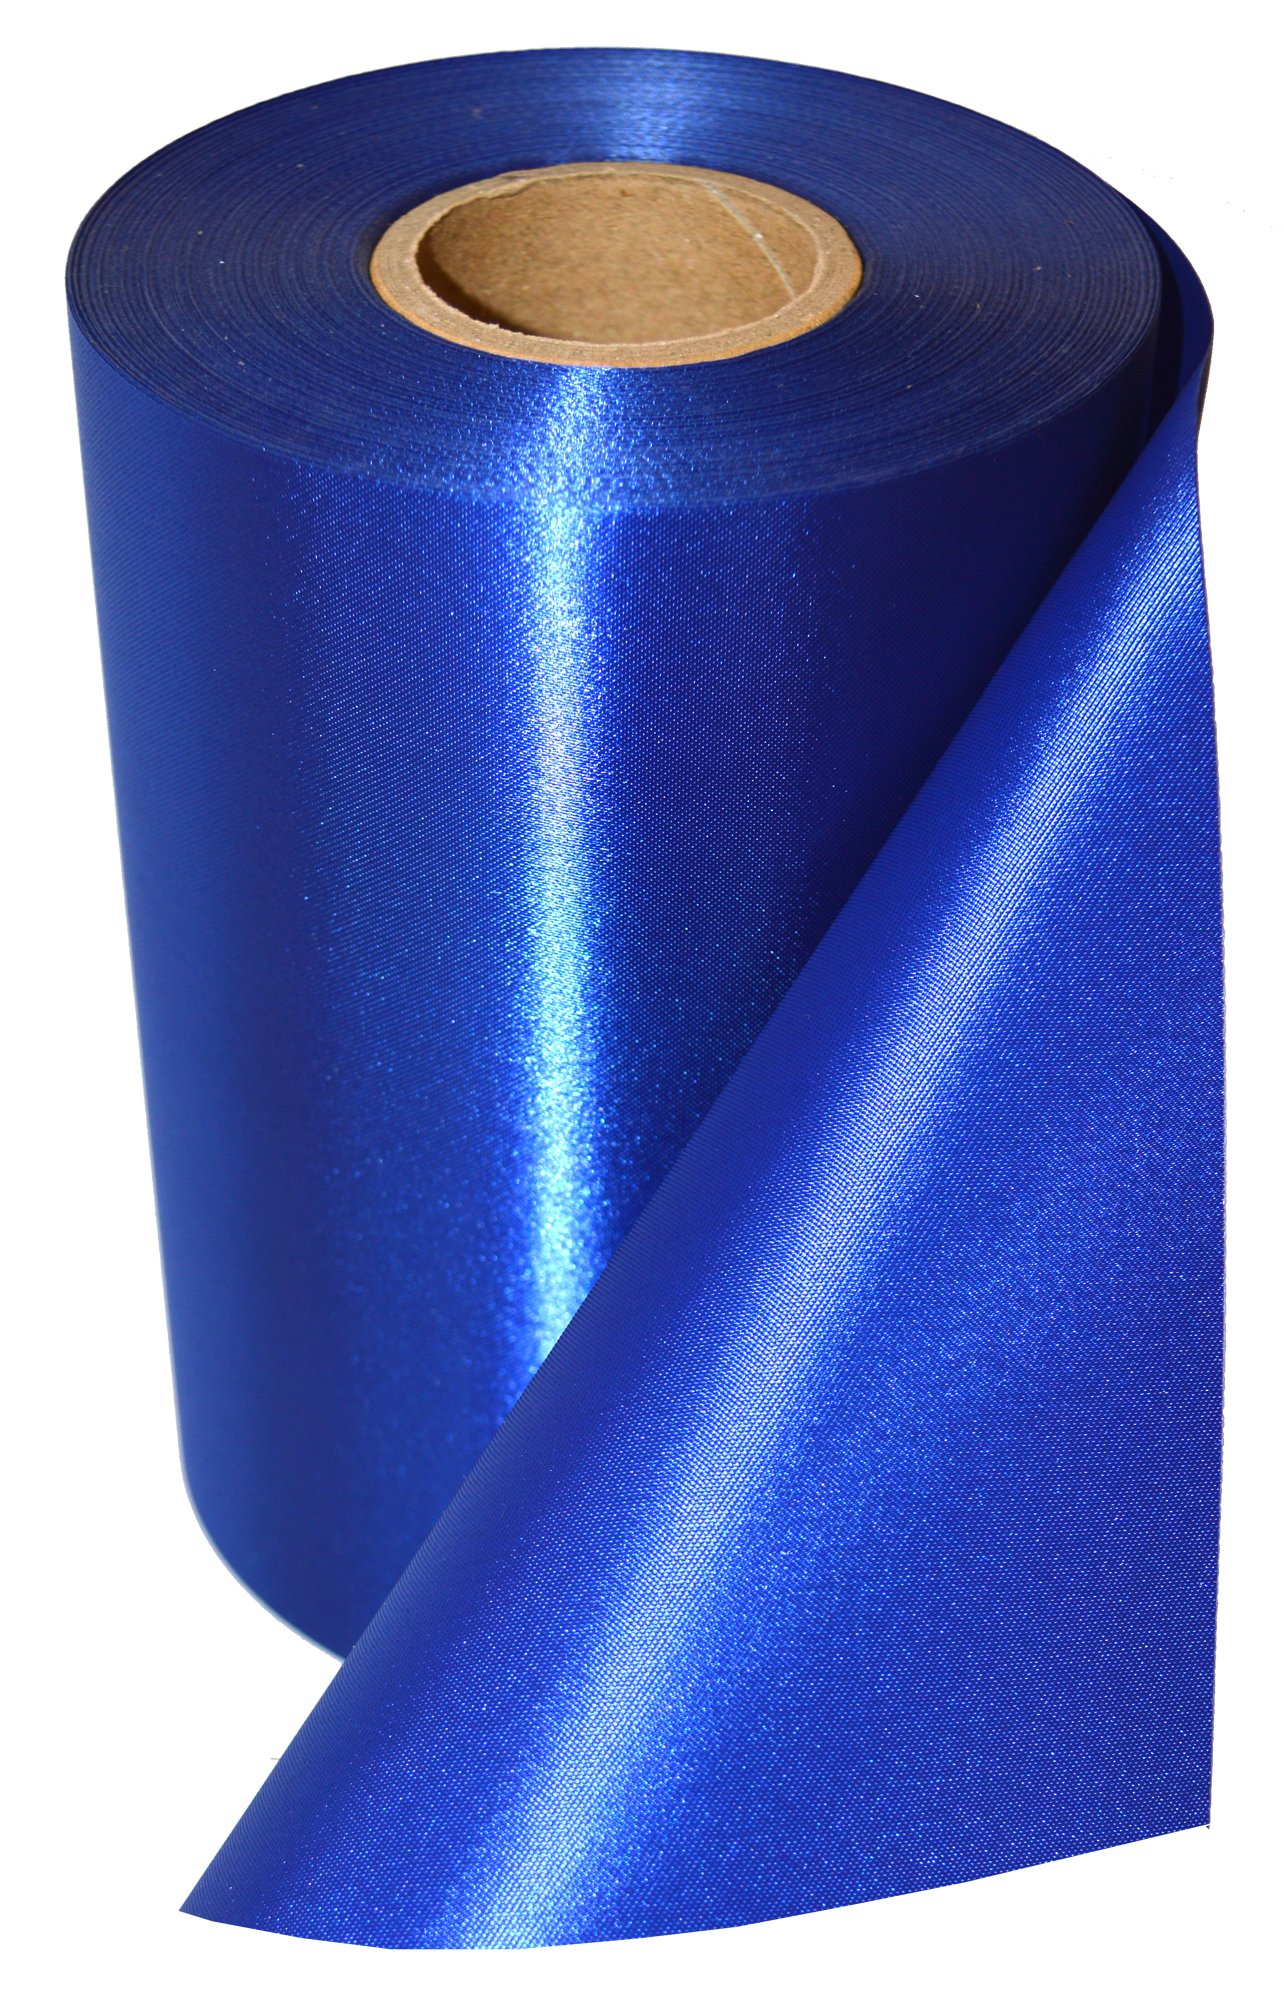 Wonder Clothing Grand Opening Ceremony Ribbon Blue 6 inches Wide 25 Yards Long by Wonder Clothing